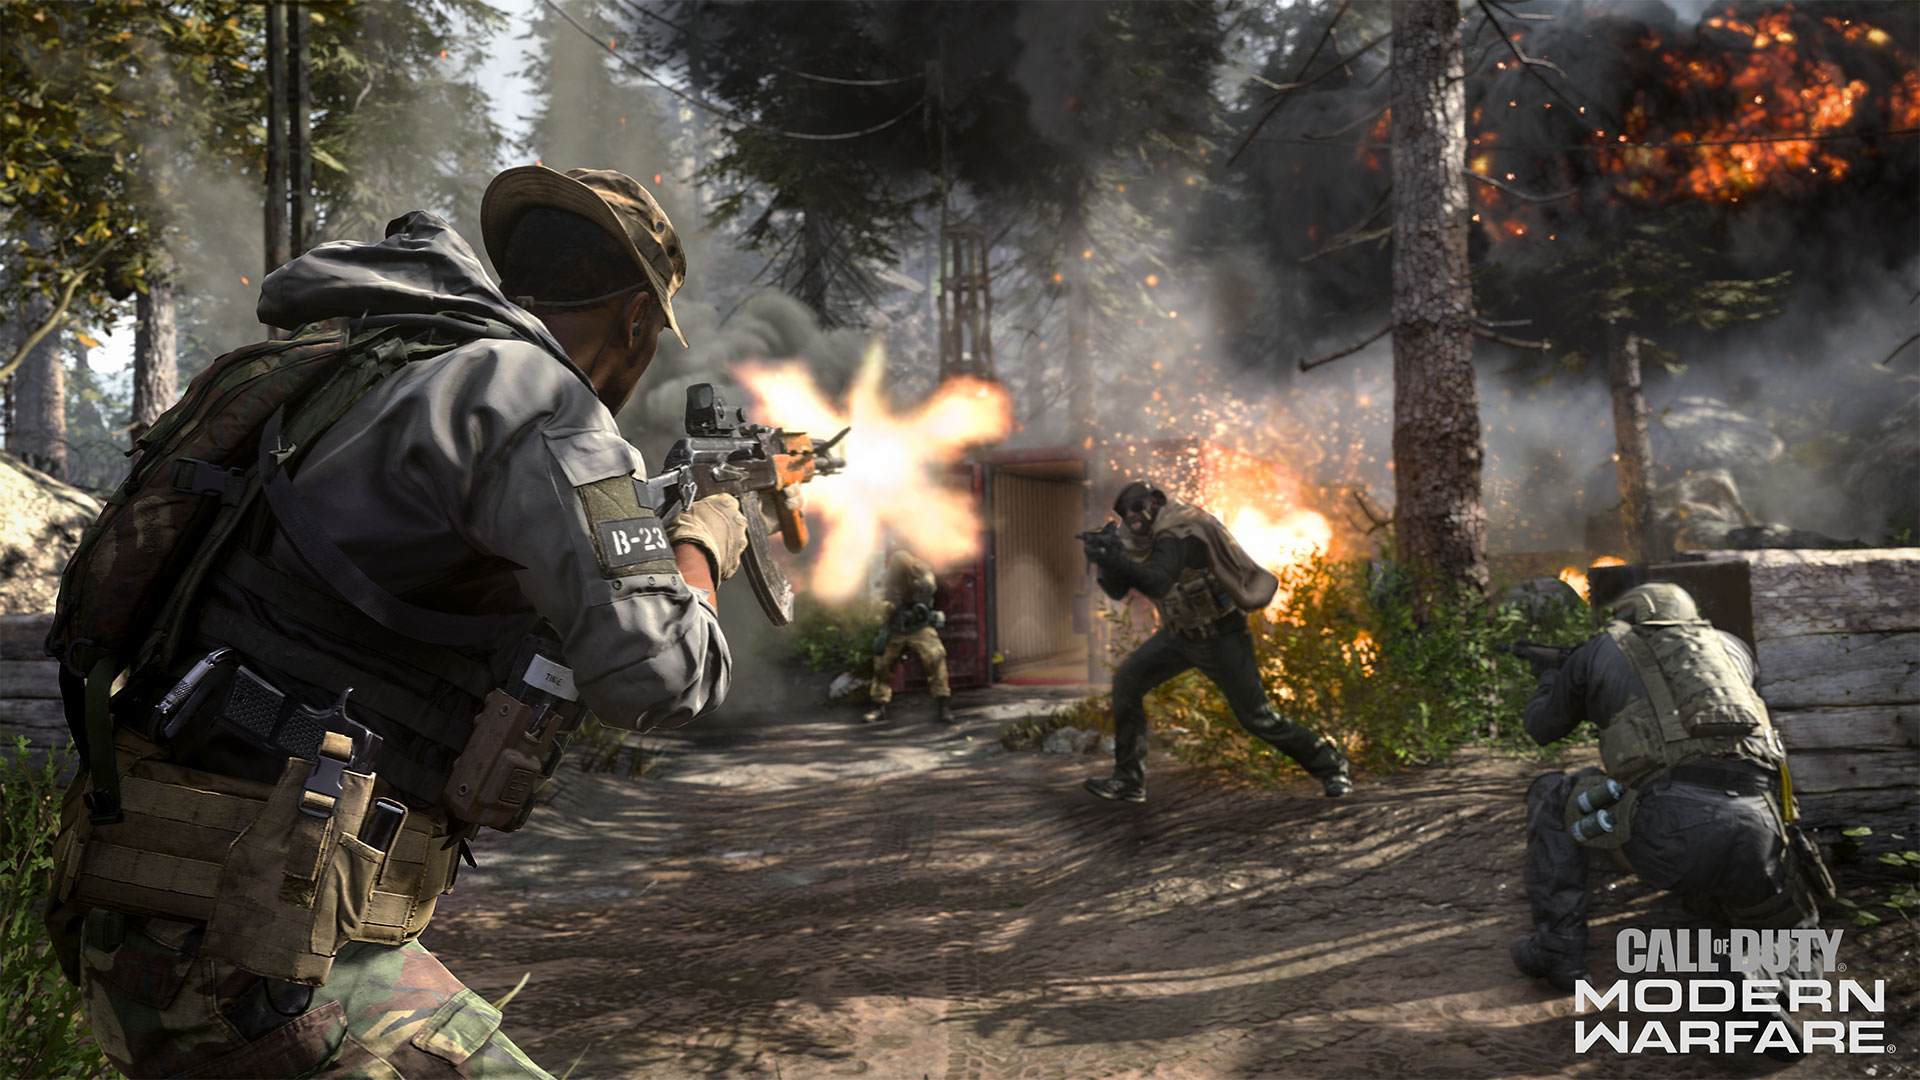 Infinity Ward Is Focused On Core Multiplayer Rather Than